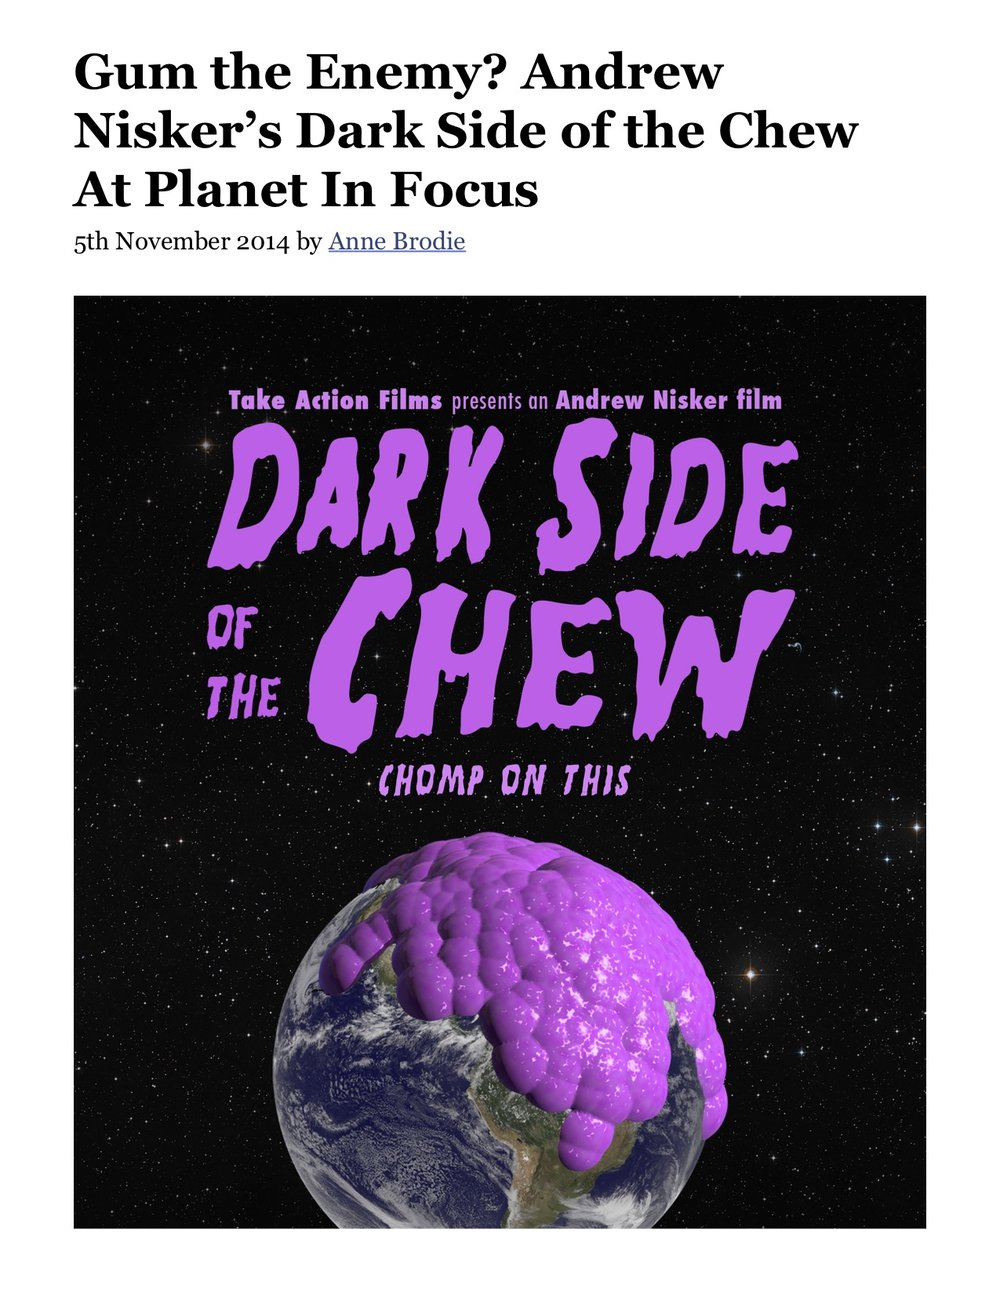 Gum the Enemy? Andrew Nisker's Dark Side of the Chew At Planet In Focus.jpg